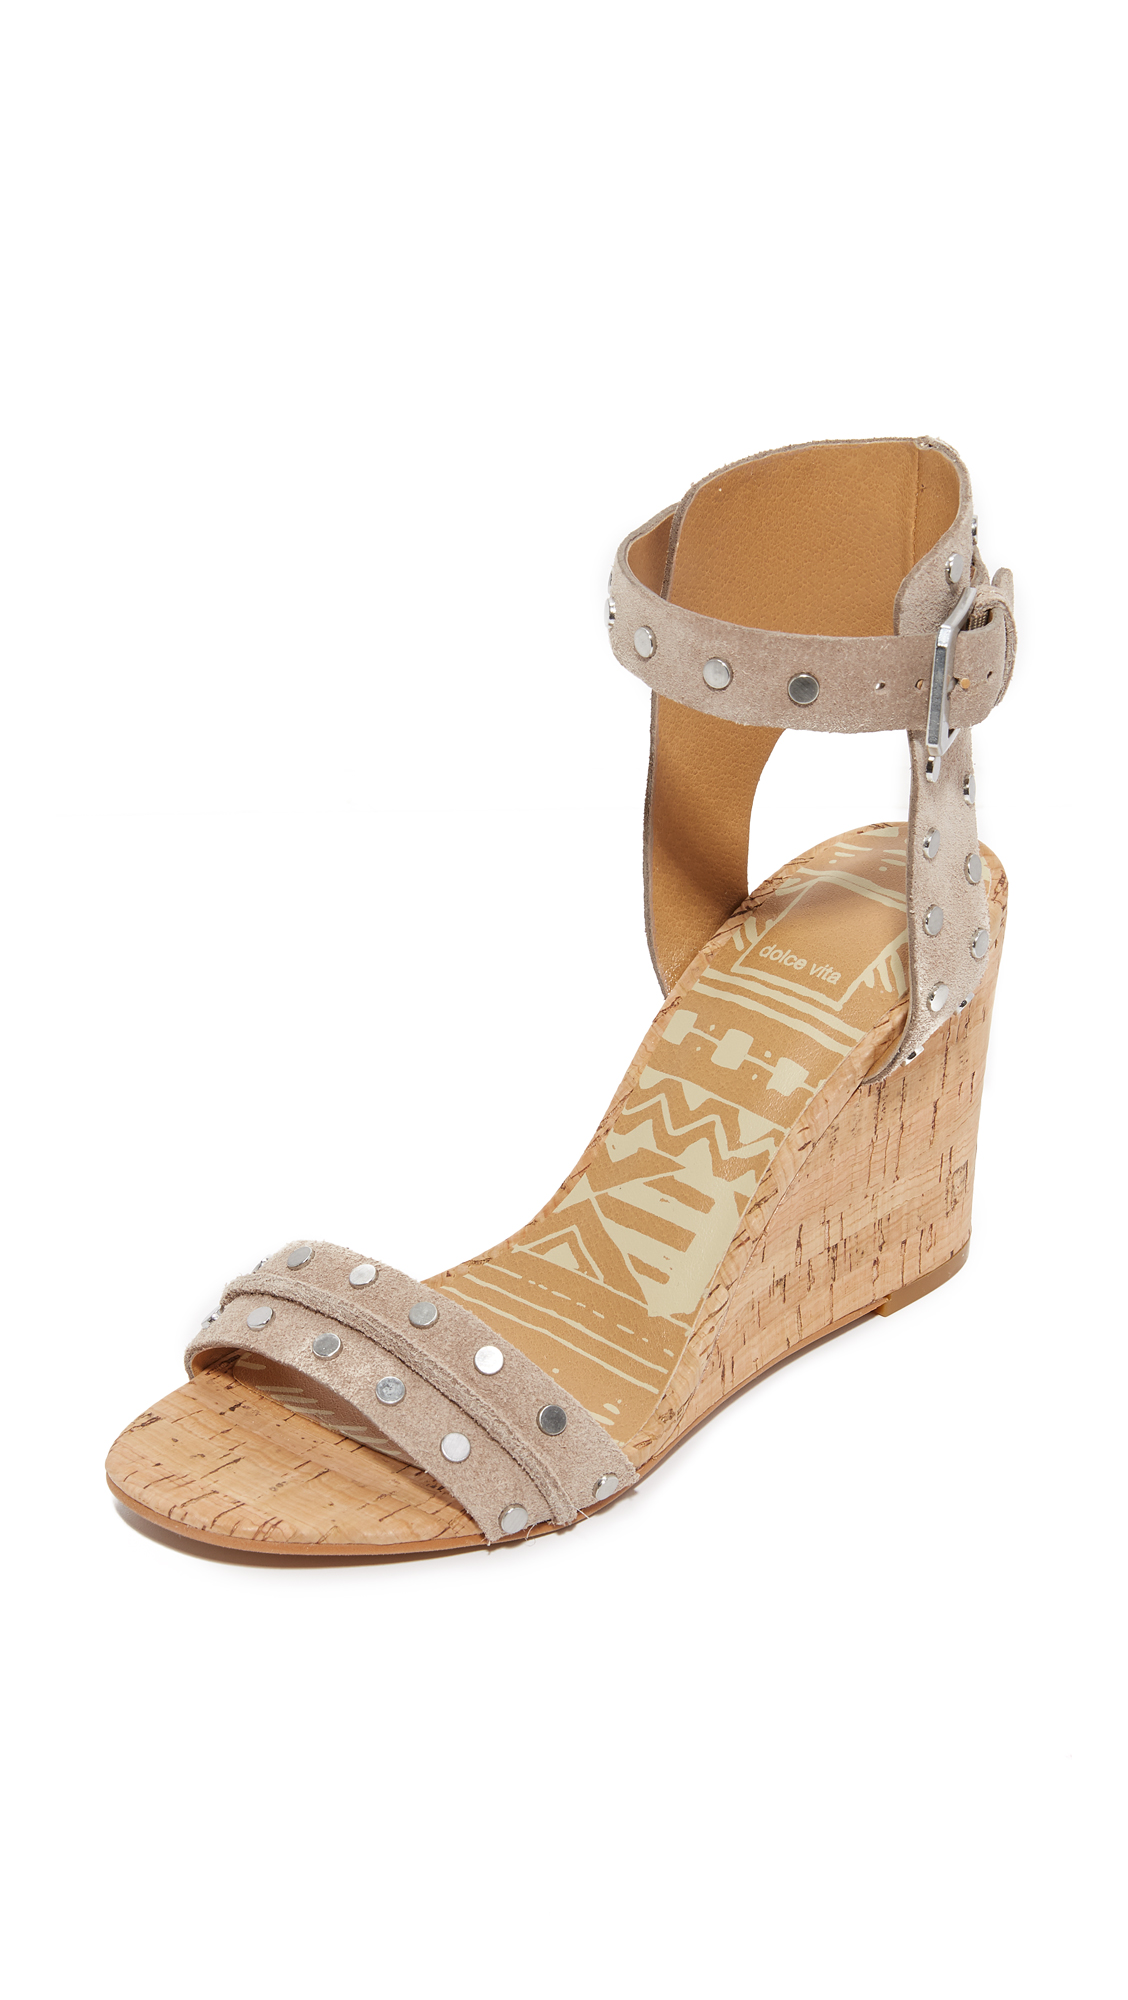 Dolce Vita Dante Wedges - Taupe